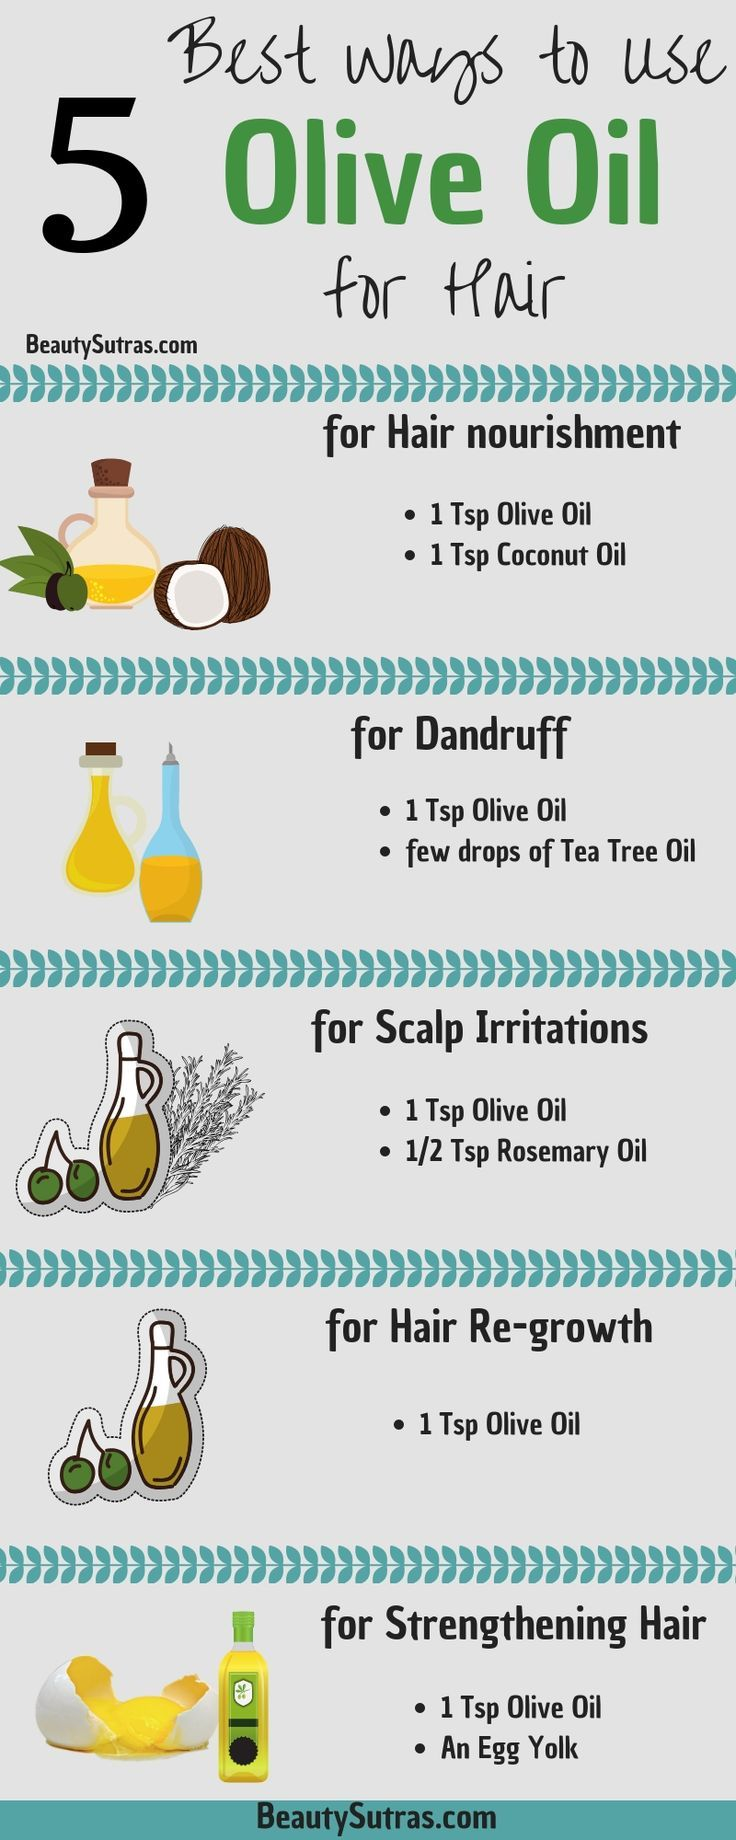 5 Best Ways to use Olive Oil for Hair